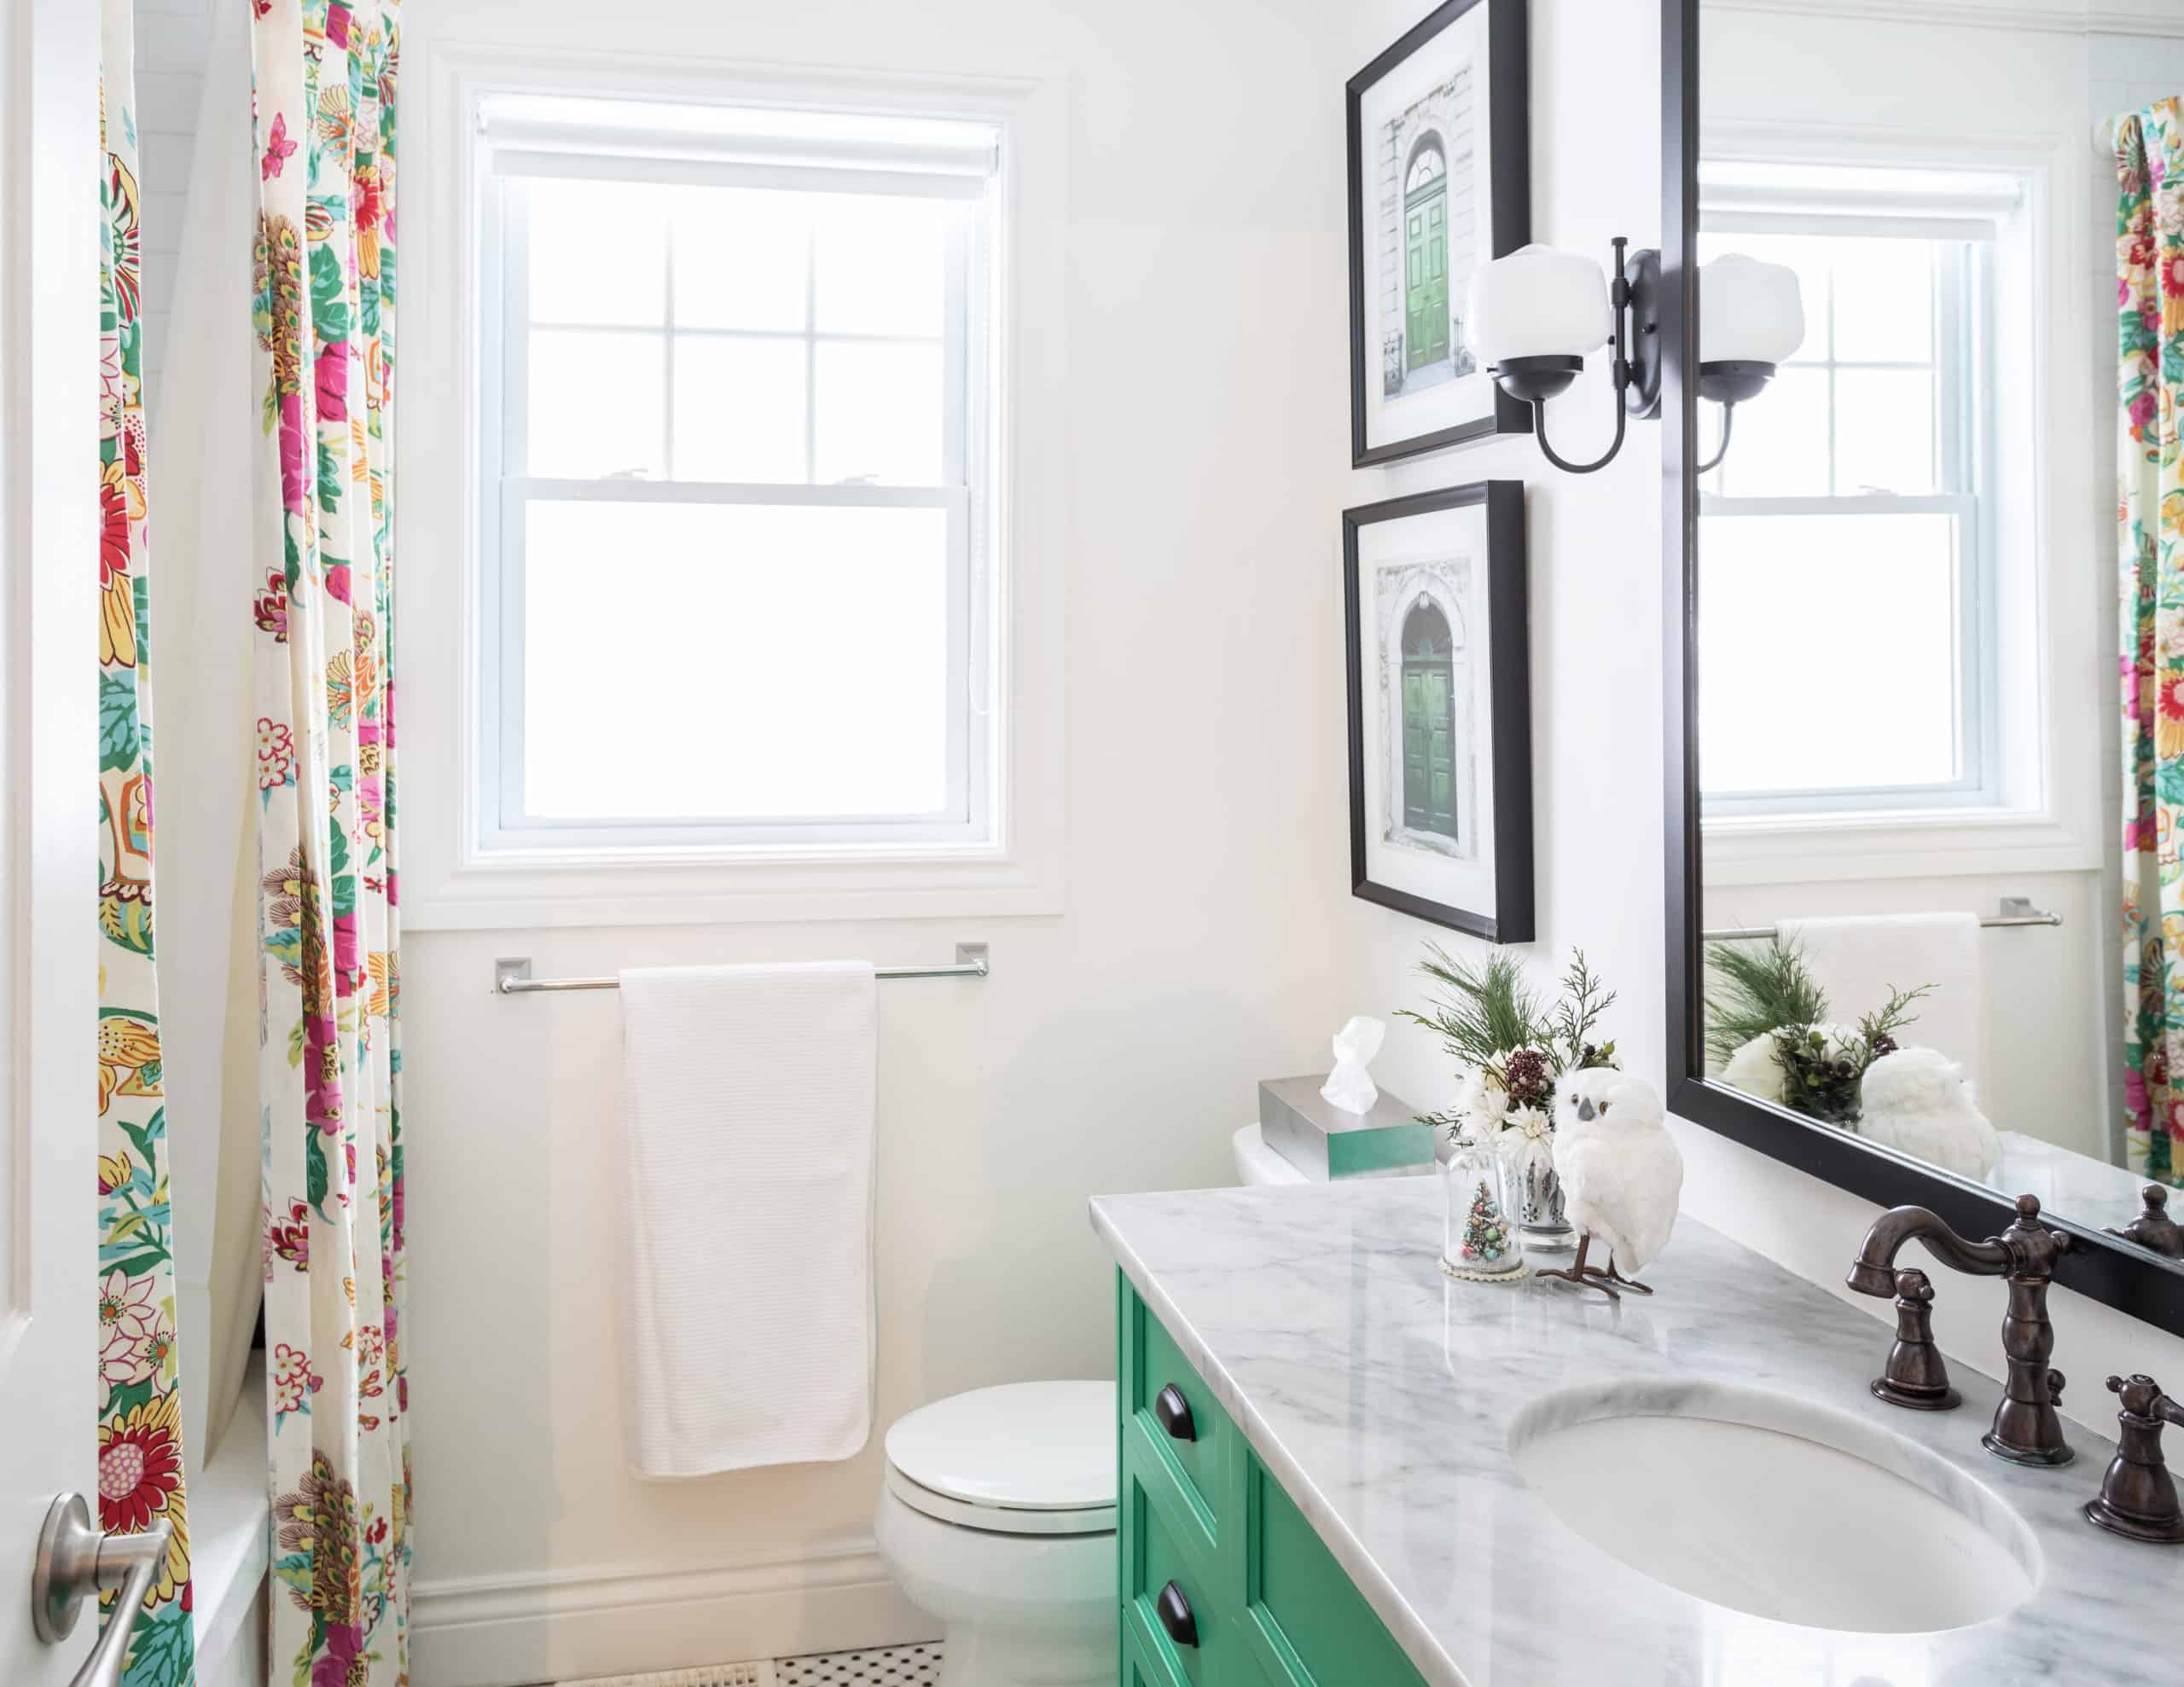 Teal vanity with a marble countertop inside a clean bathroom